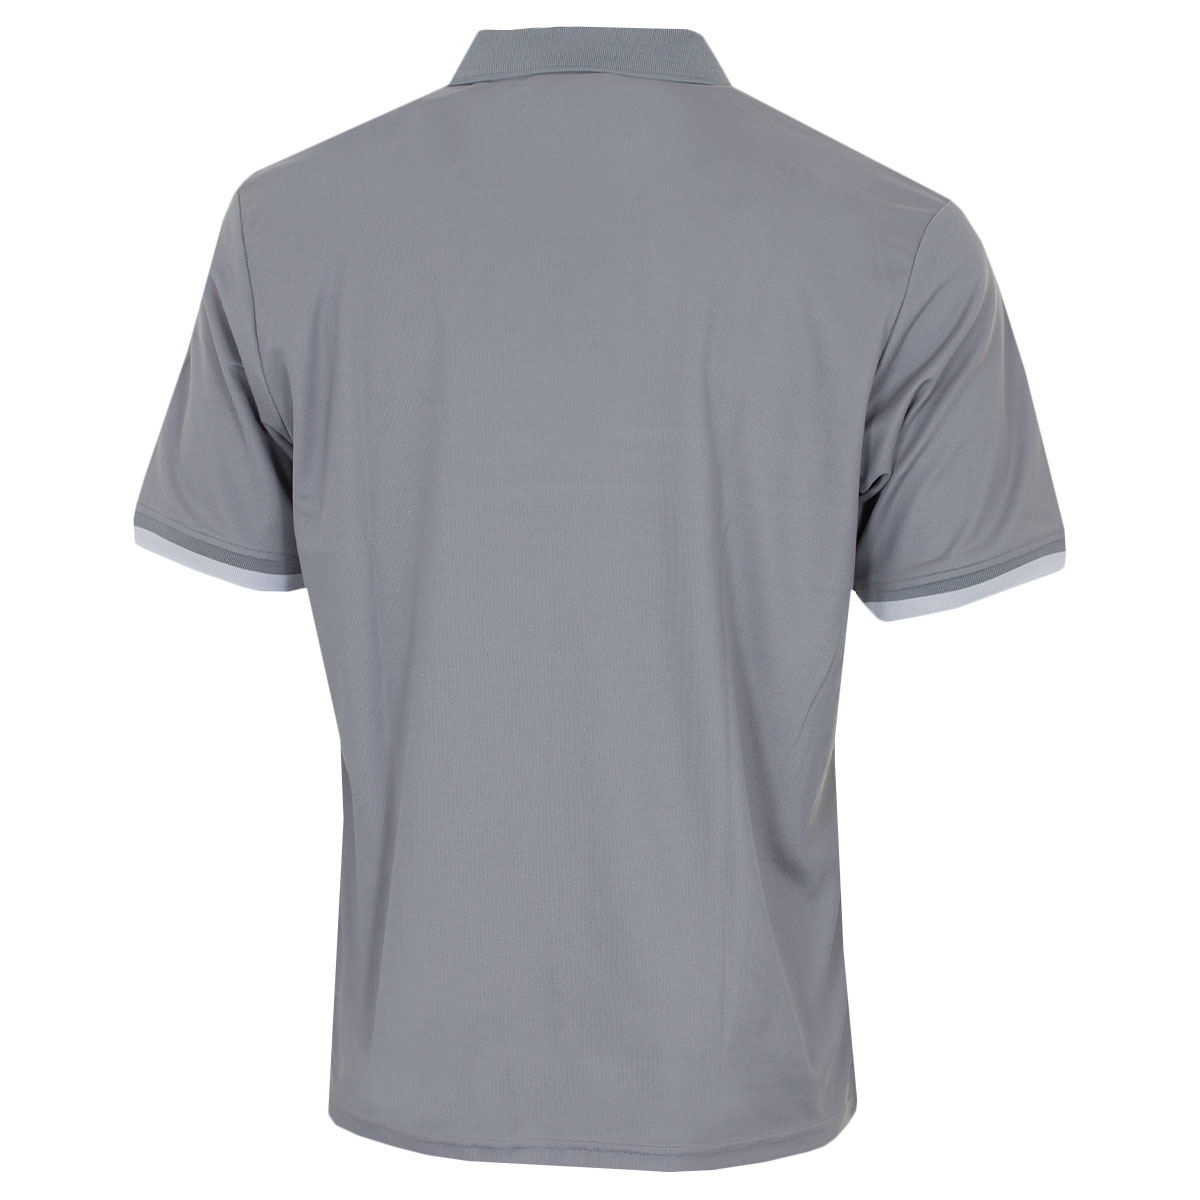 Island-Green-Mens-Moisture-Wicking-Quick-Drying-Golf-Polo-48-OFF-RRP thumbnail 3